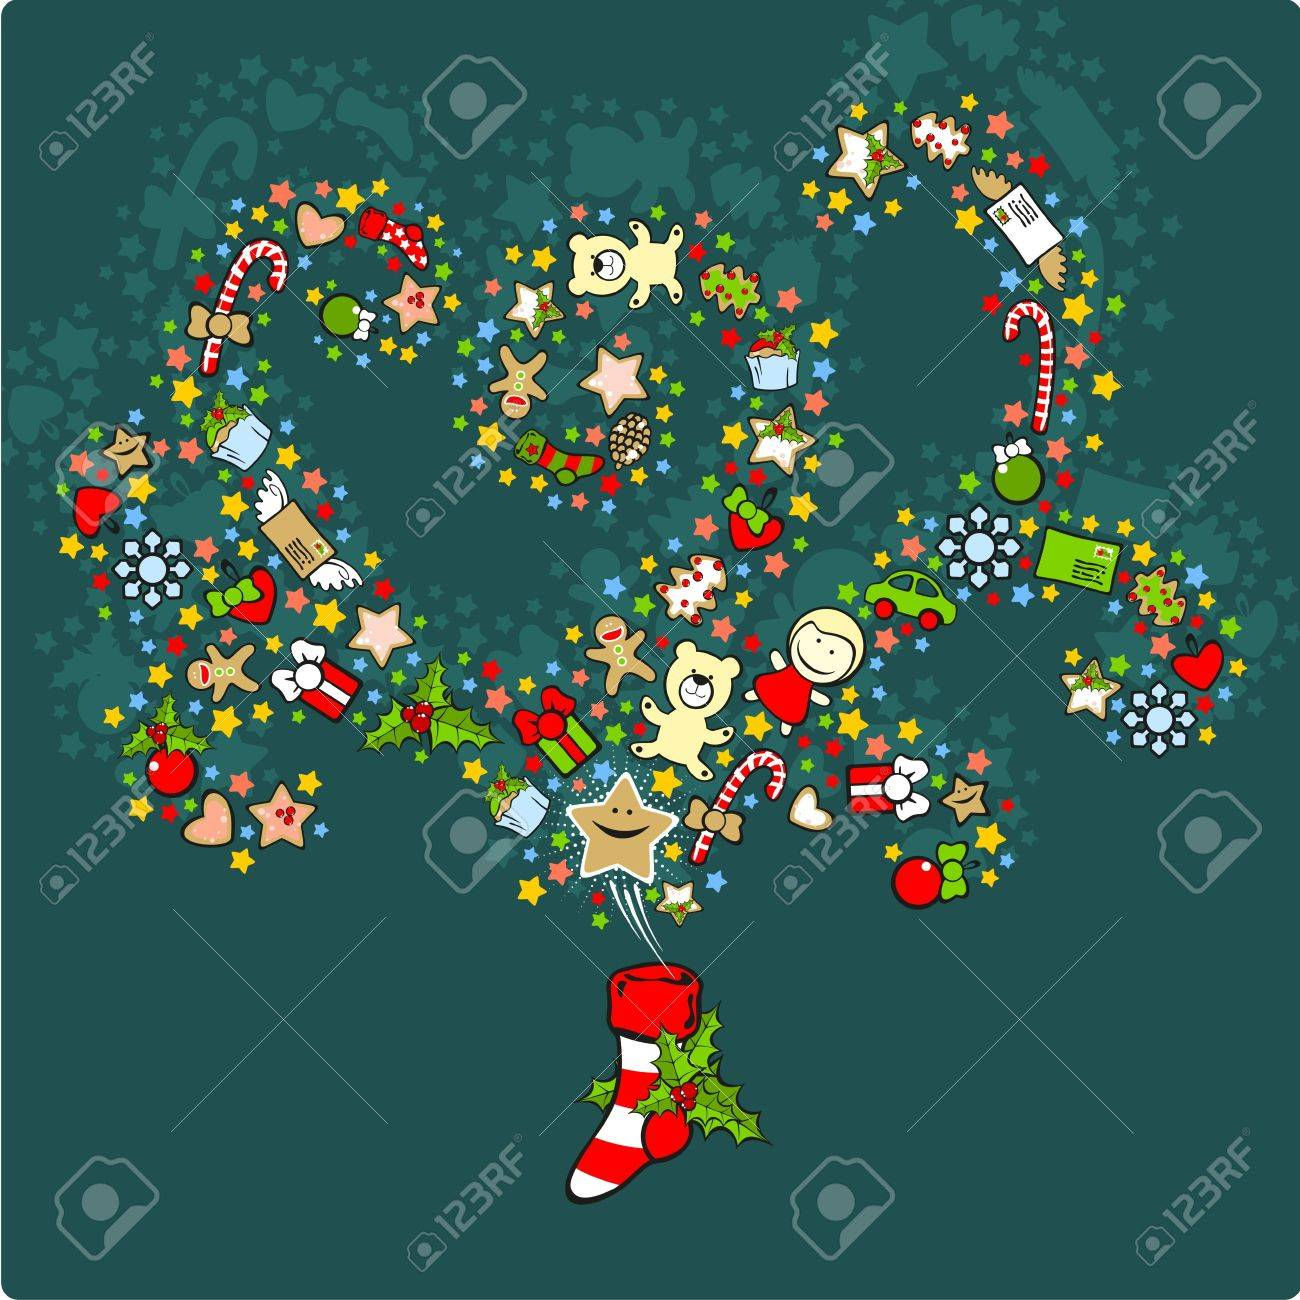 Magic Christmas stocking filled with presents Stock Vector - 11595701